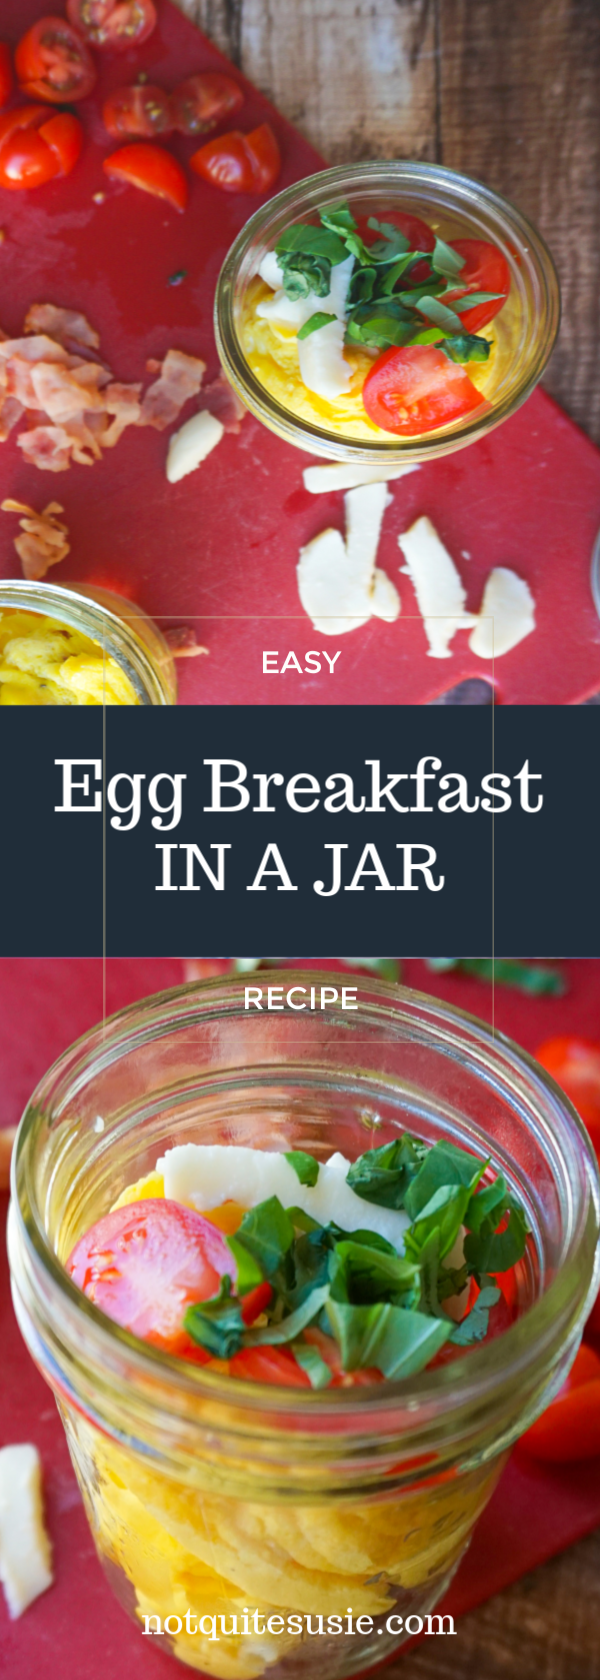 Need an easy but healthy breakfast idea for a busy weekday morning? Try these microwave omelet recipes! With just a few ingredients and one minute, you can have a low carb, Paleo friendly scrambled egg breakfast that you can eat quickly at home or even on the go. And you can even make it ahead of time to get out the door even faster!